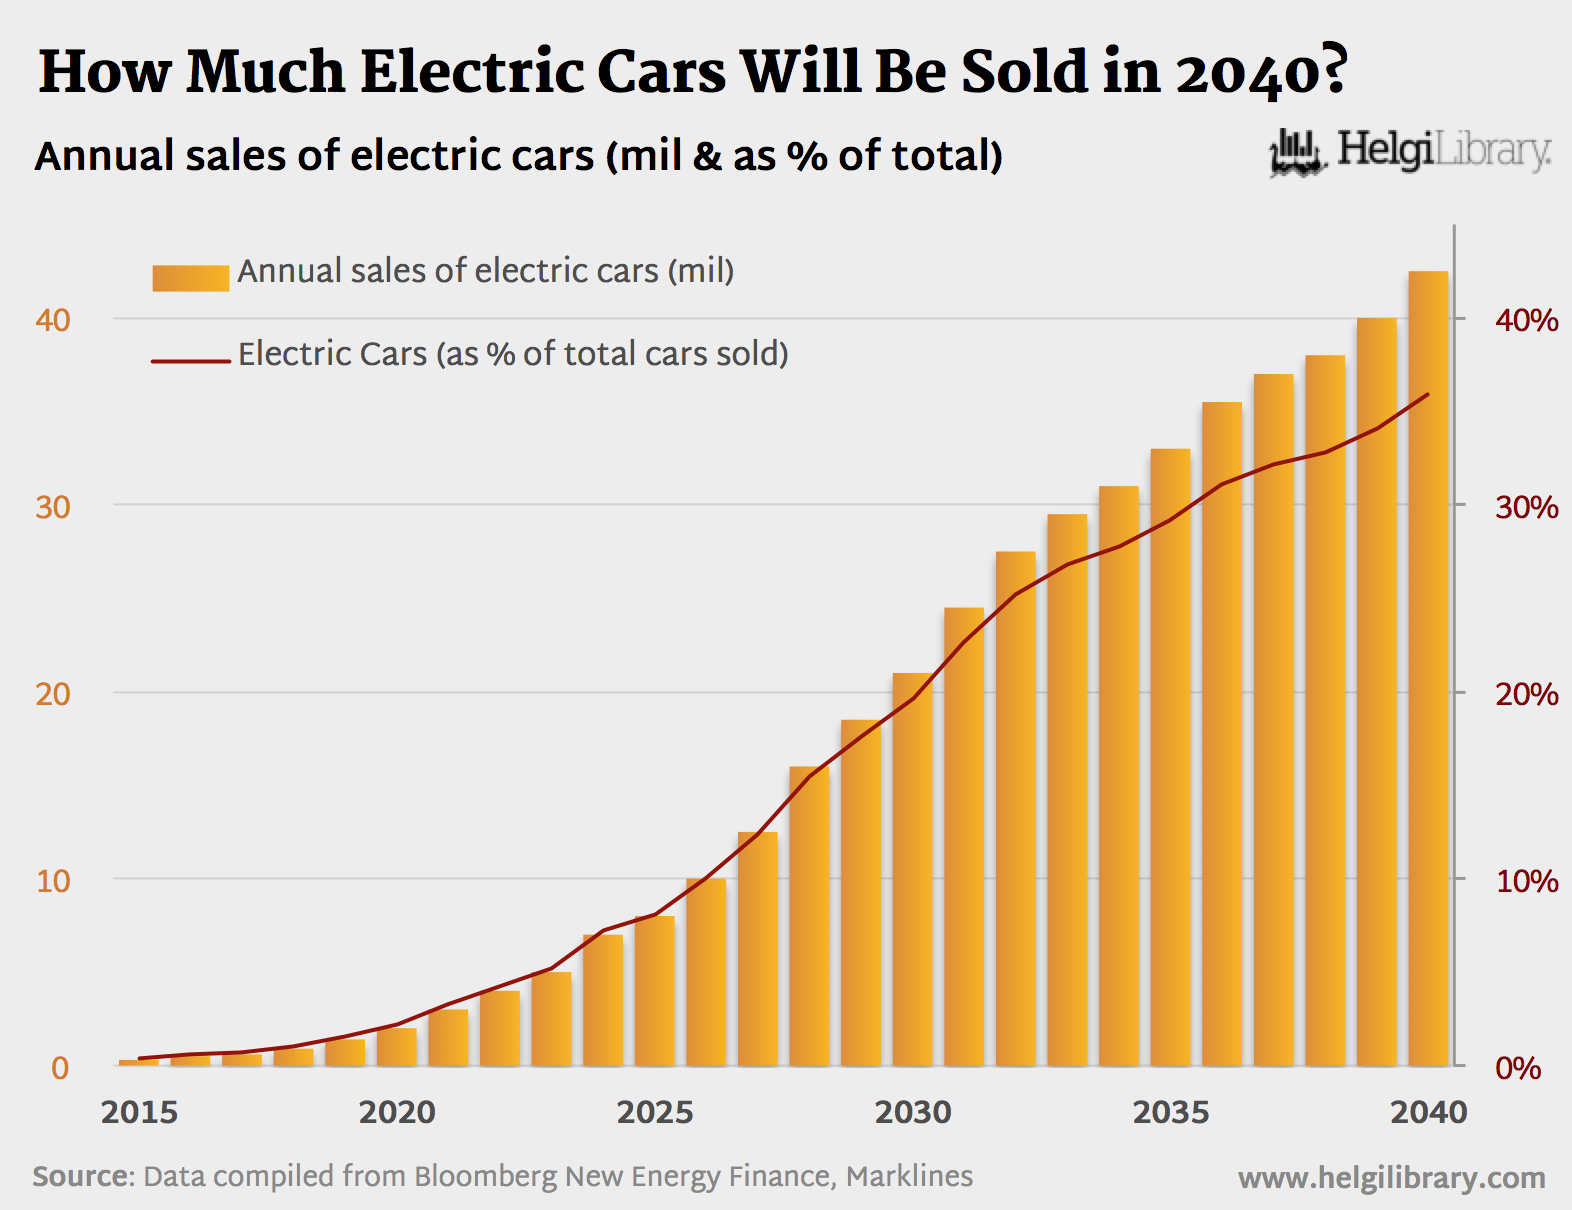 How Many Electric Cars Will Be Sold In 2040